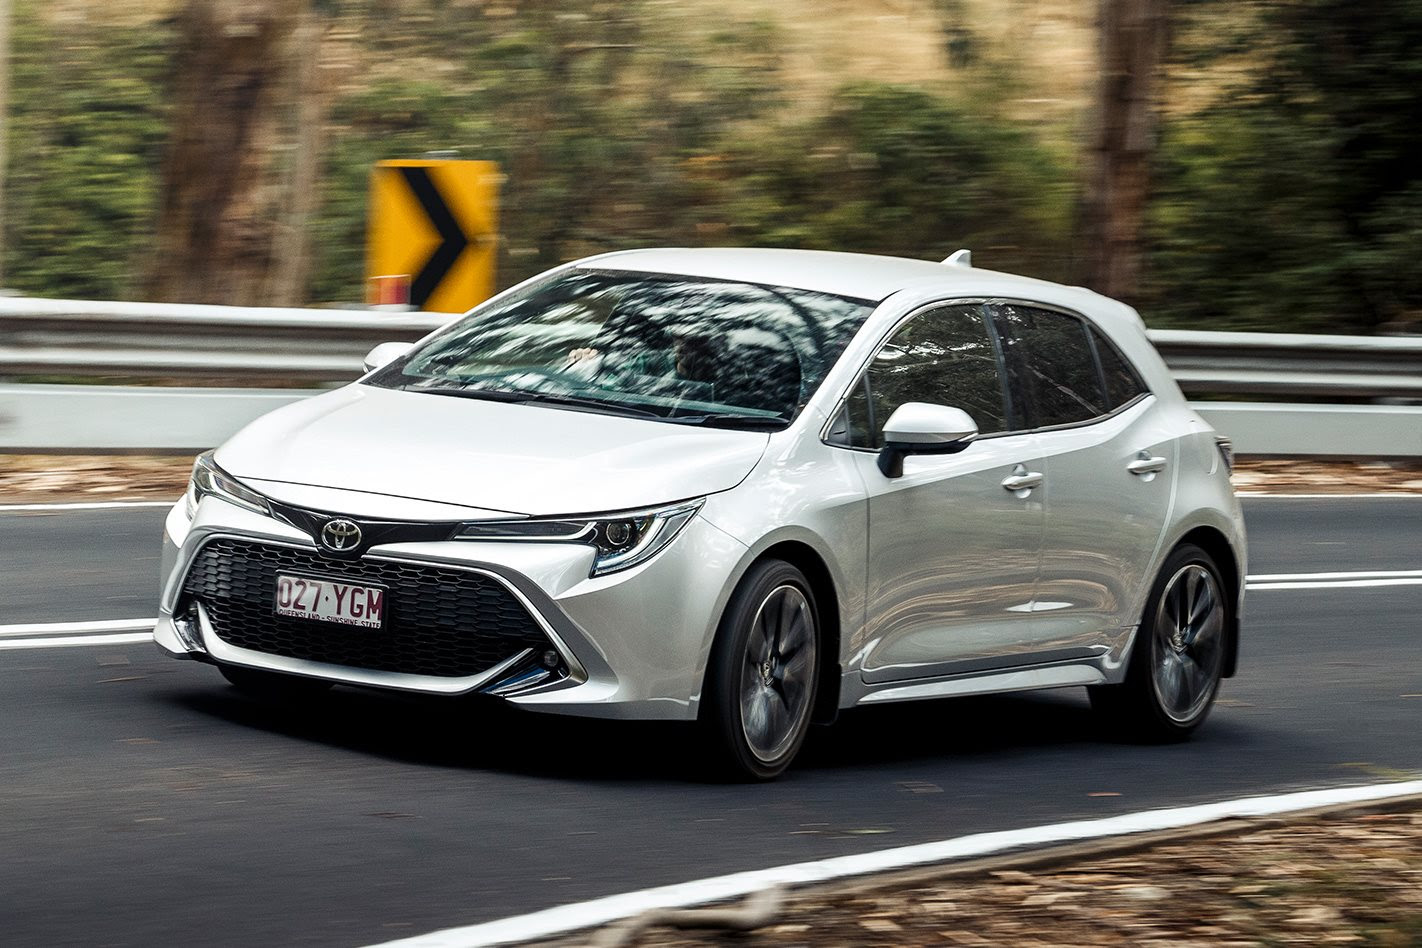 2019 Toyota Corolla Zr Petrol Hatch Quick Review